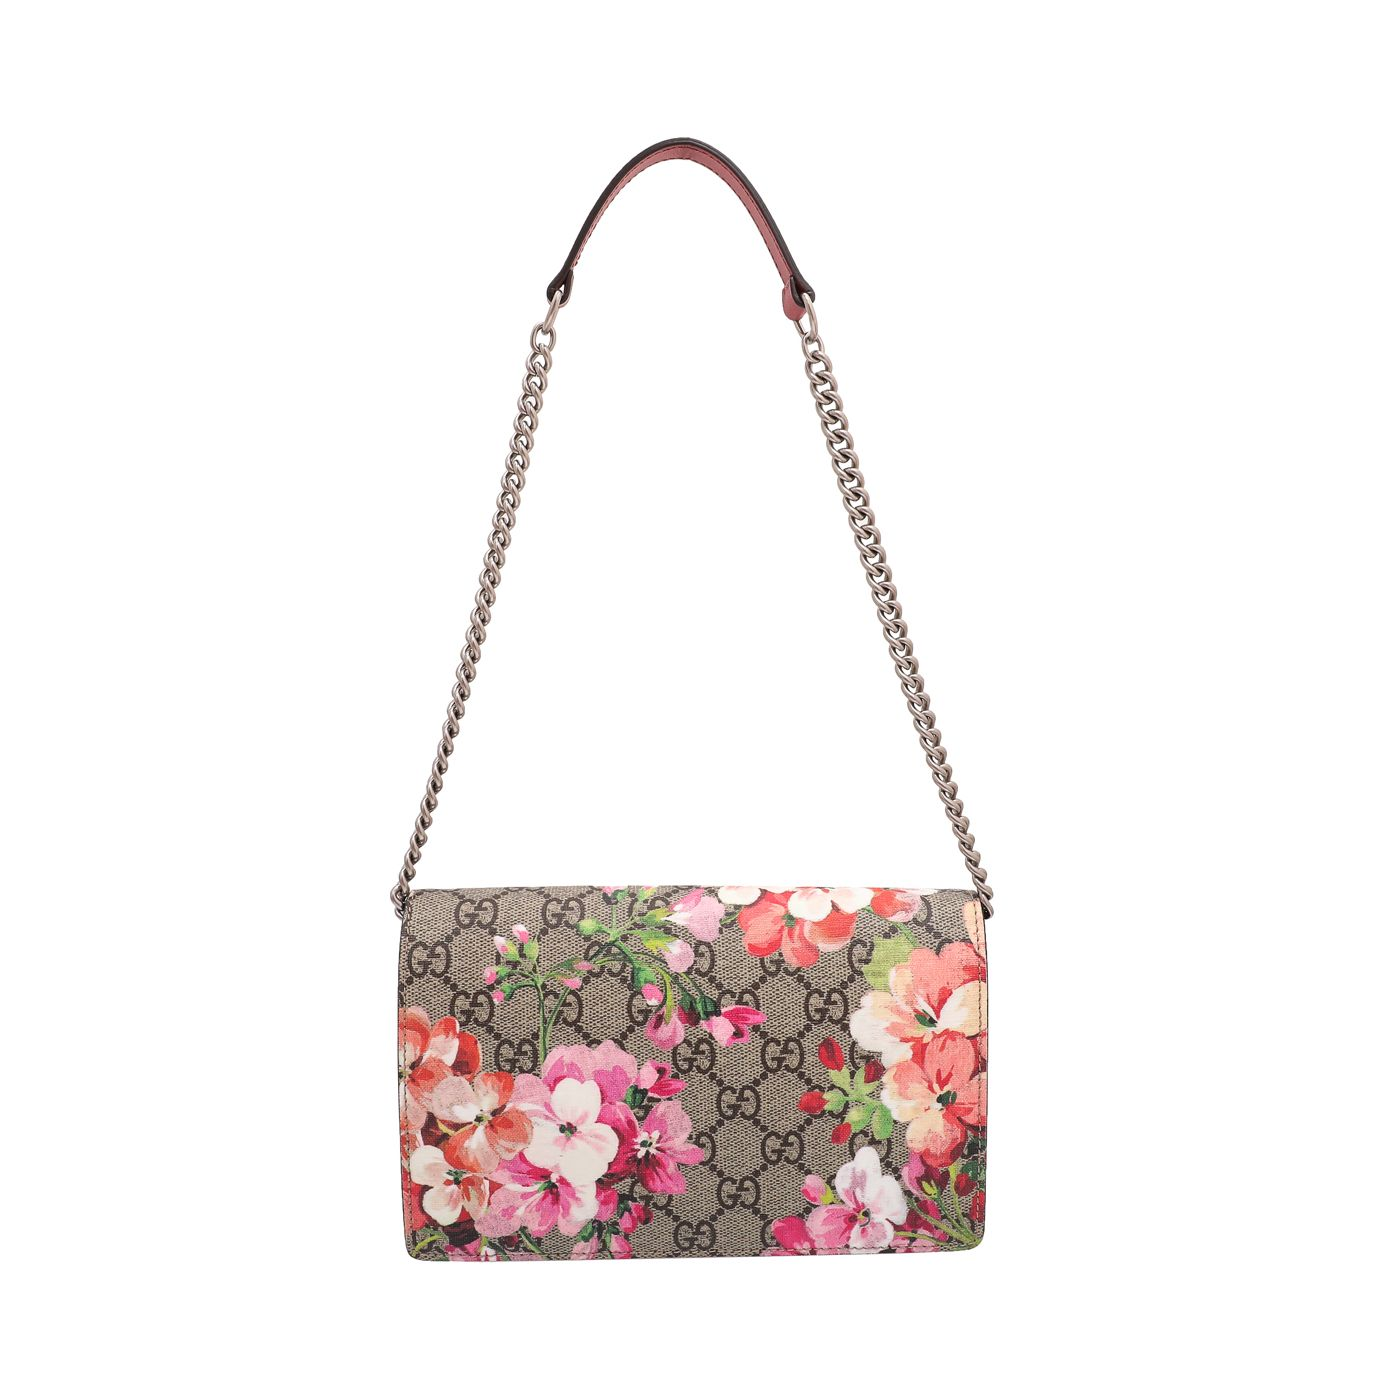 Gucci Rose Antique GG Blooms Print Chain Wallet